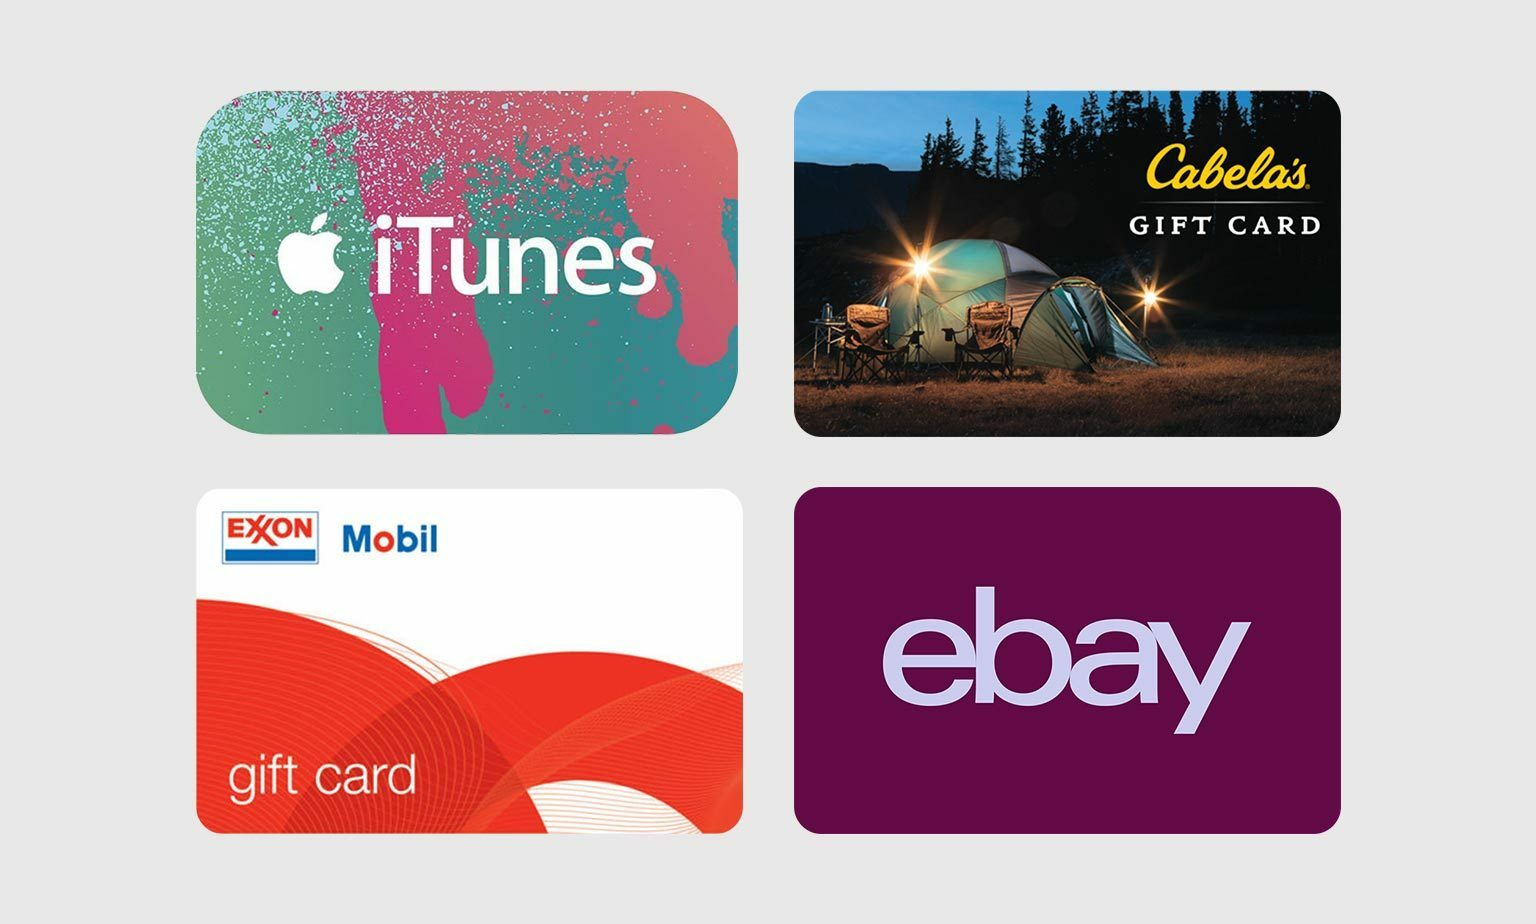 fast-food products in Restaurant & Dining Gift Cards | eBay